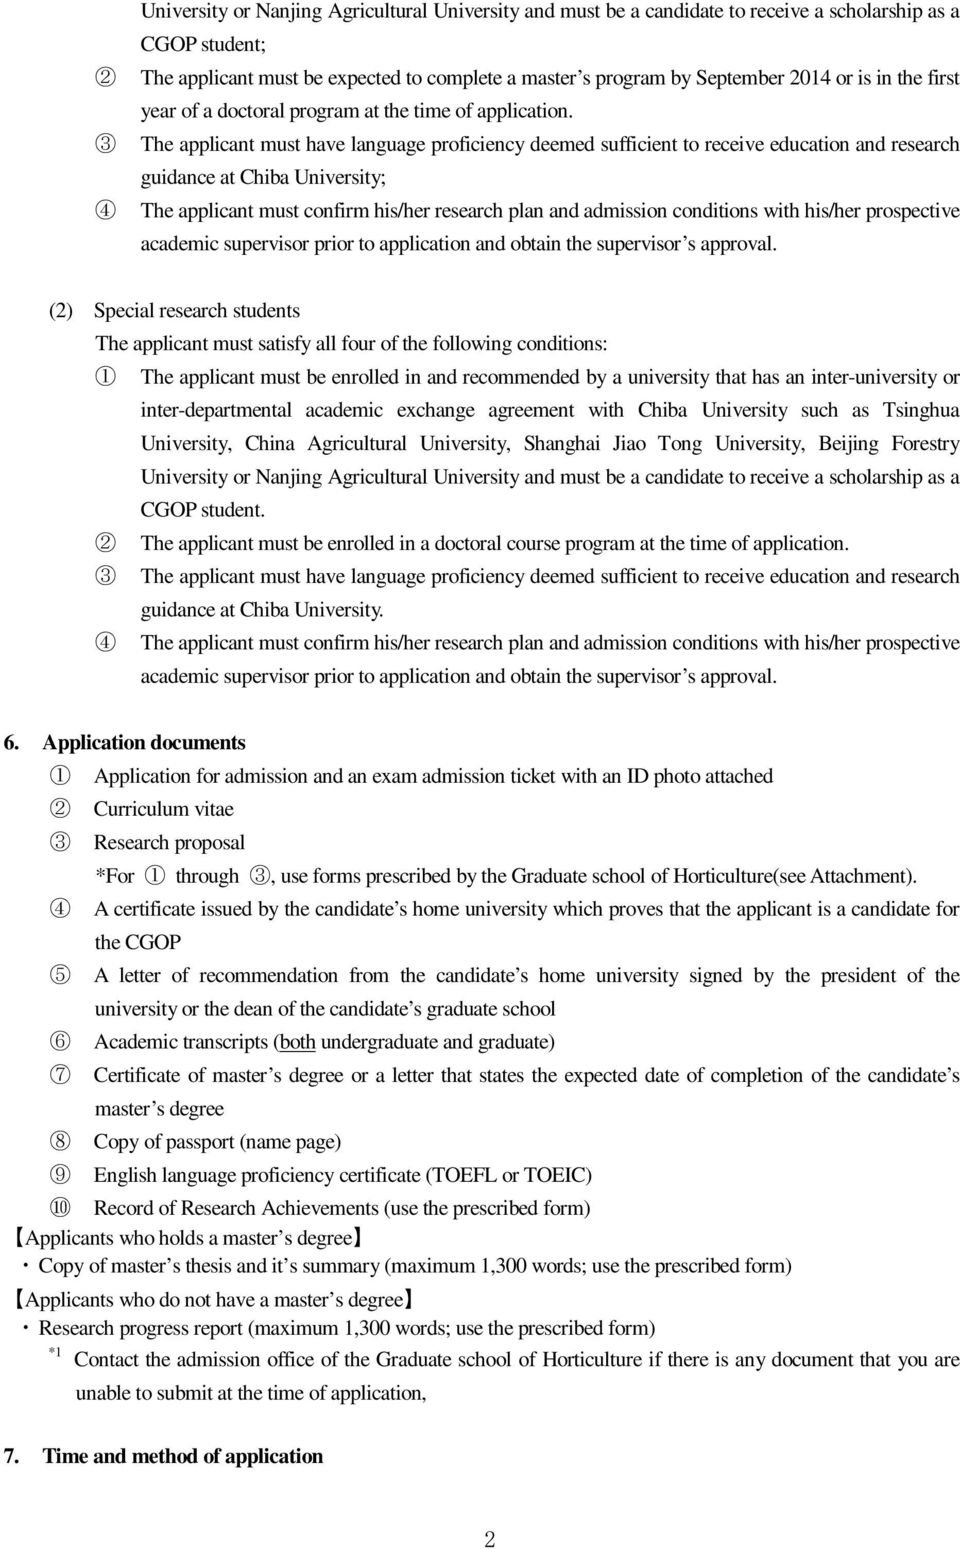 The applicant must have language proficiency deemed sufficient to receive education and research guidance at Chiba University; The applicant must confirm his/her research plan and admission